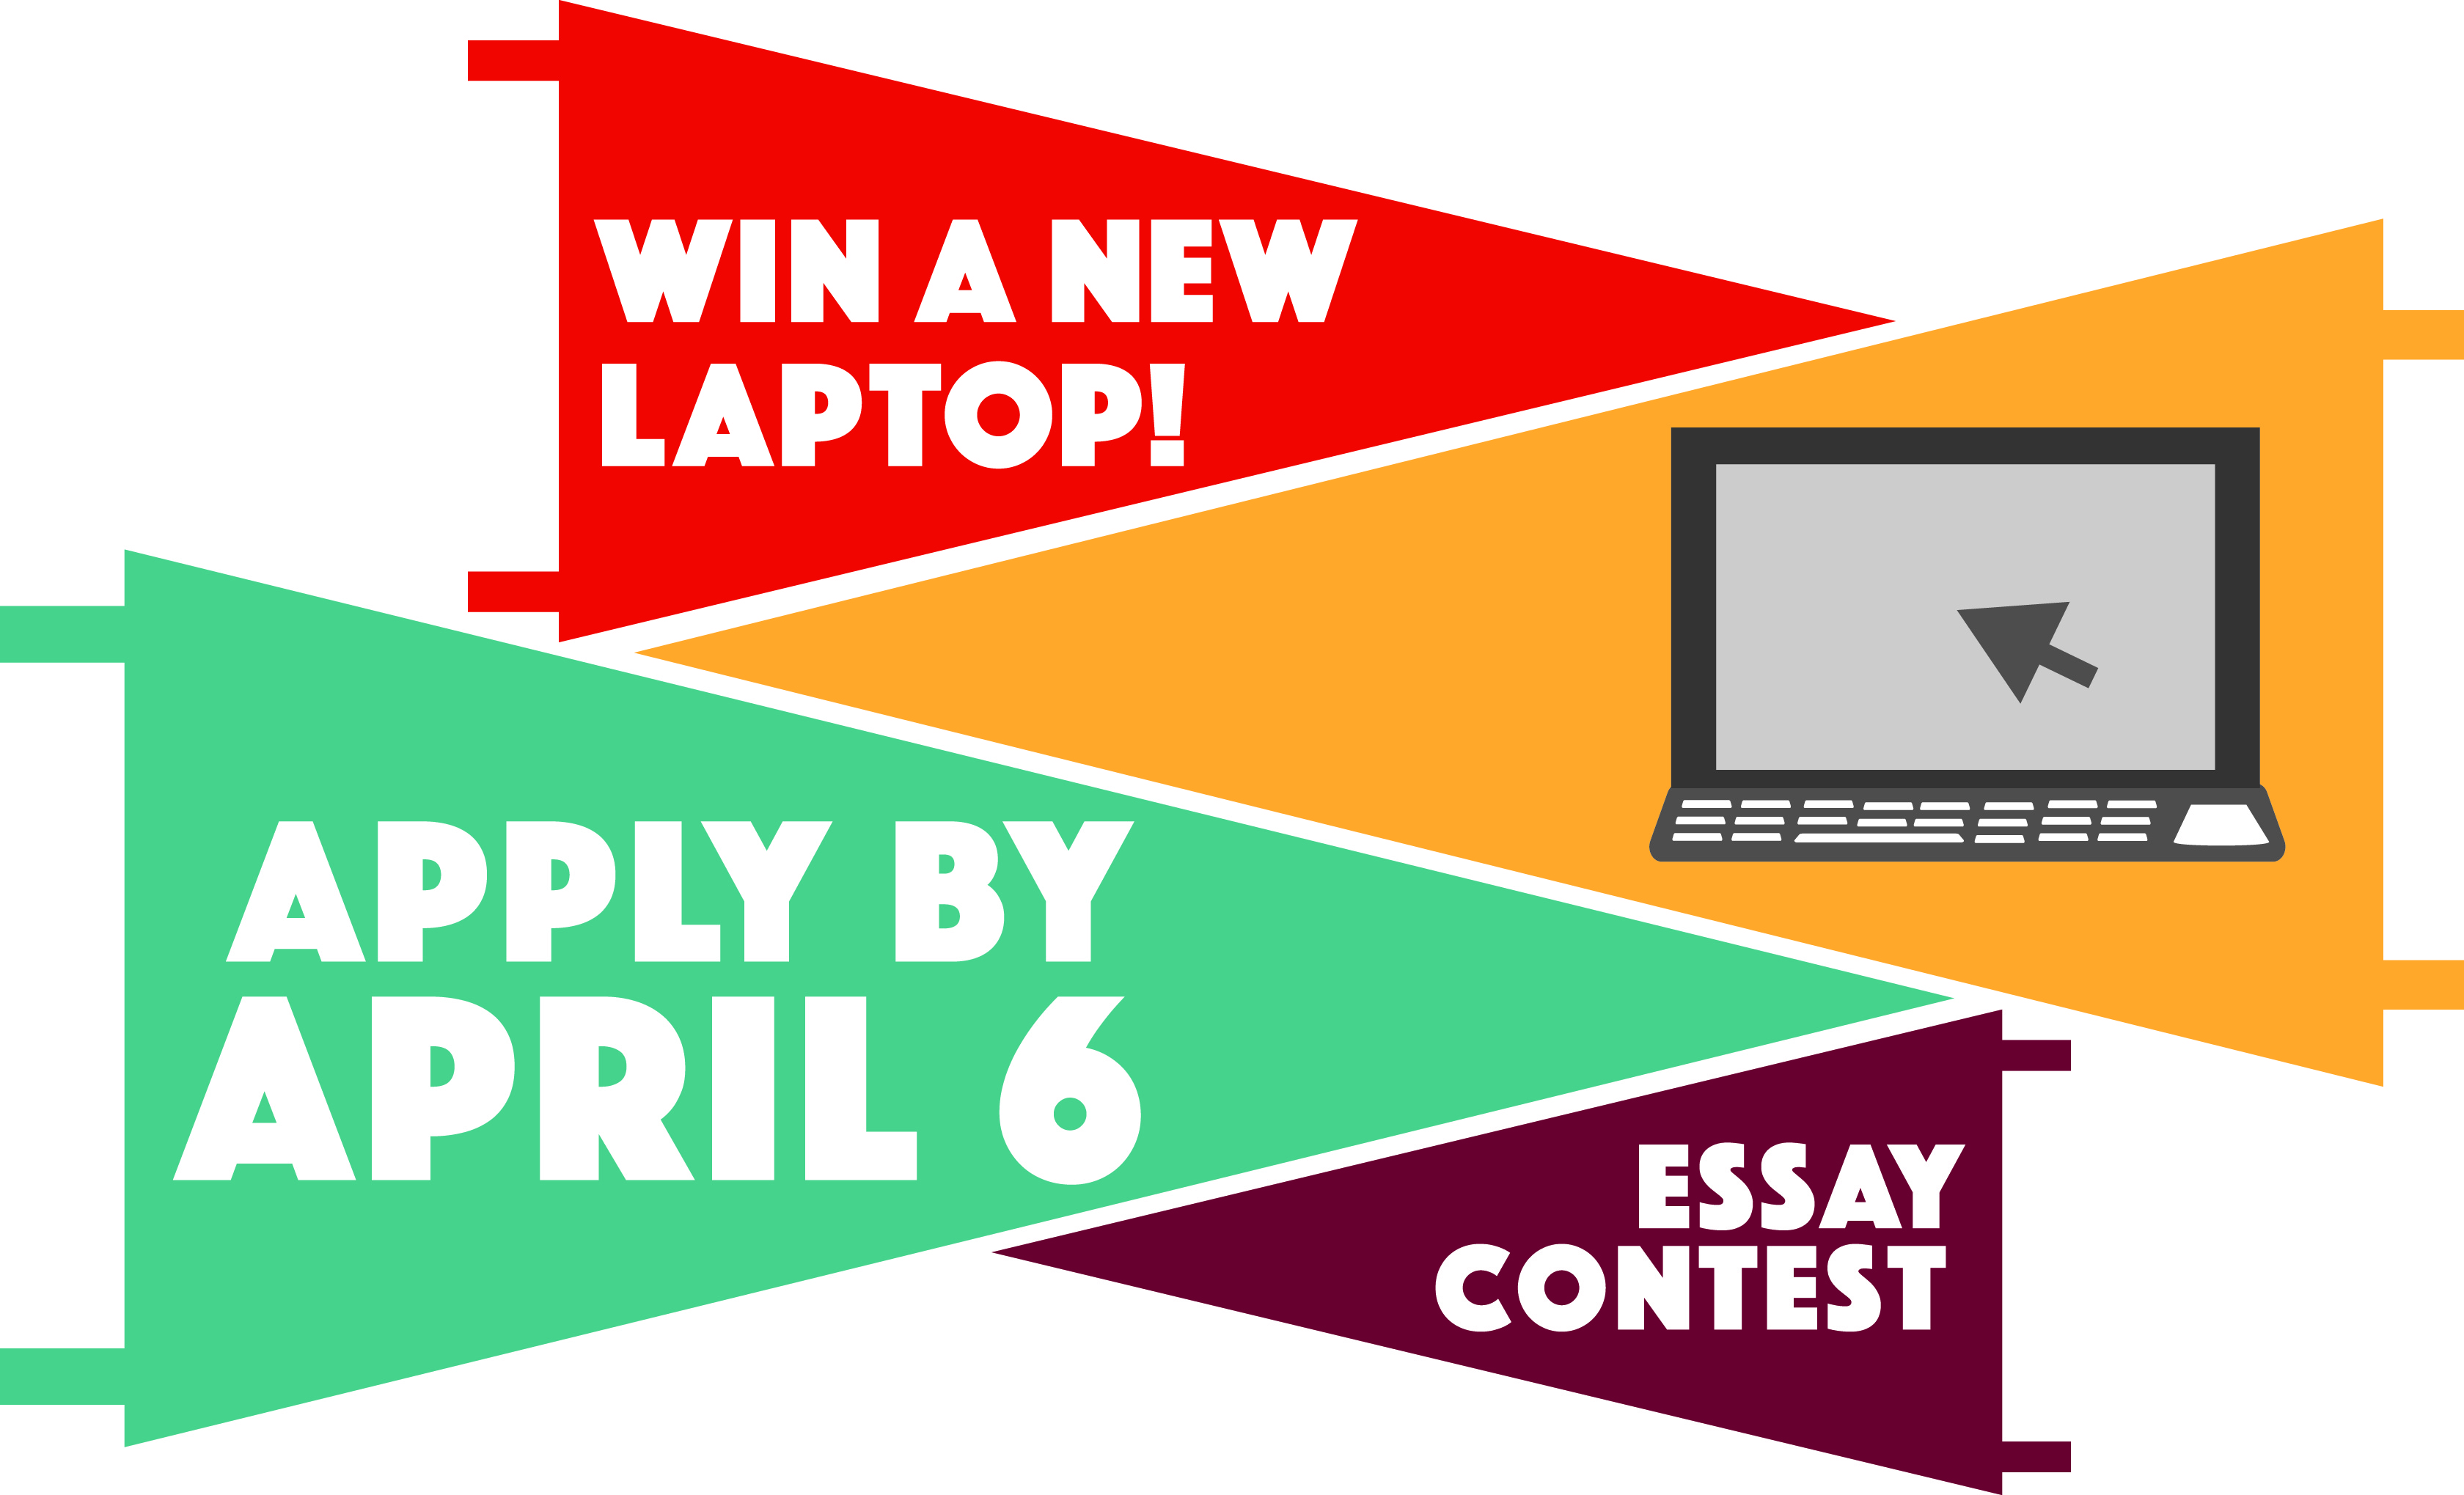 essay laptop contest college An essay contest in three stages open to all current full-time registered students in an undergraduate architecture degree program, undergraduates majoring in architecture, or diploma students in accredited schools of architecture worldwide 25,000 usd purse.